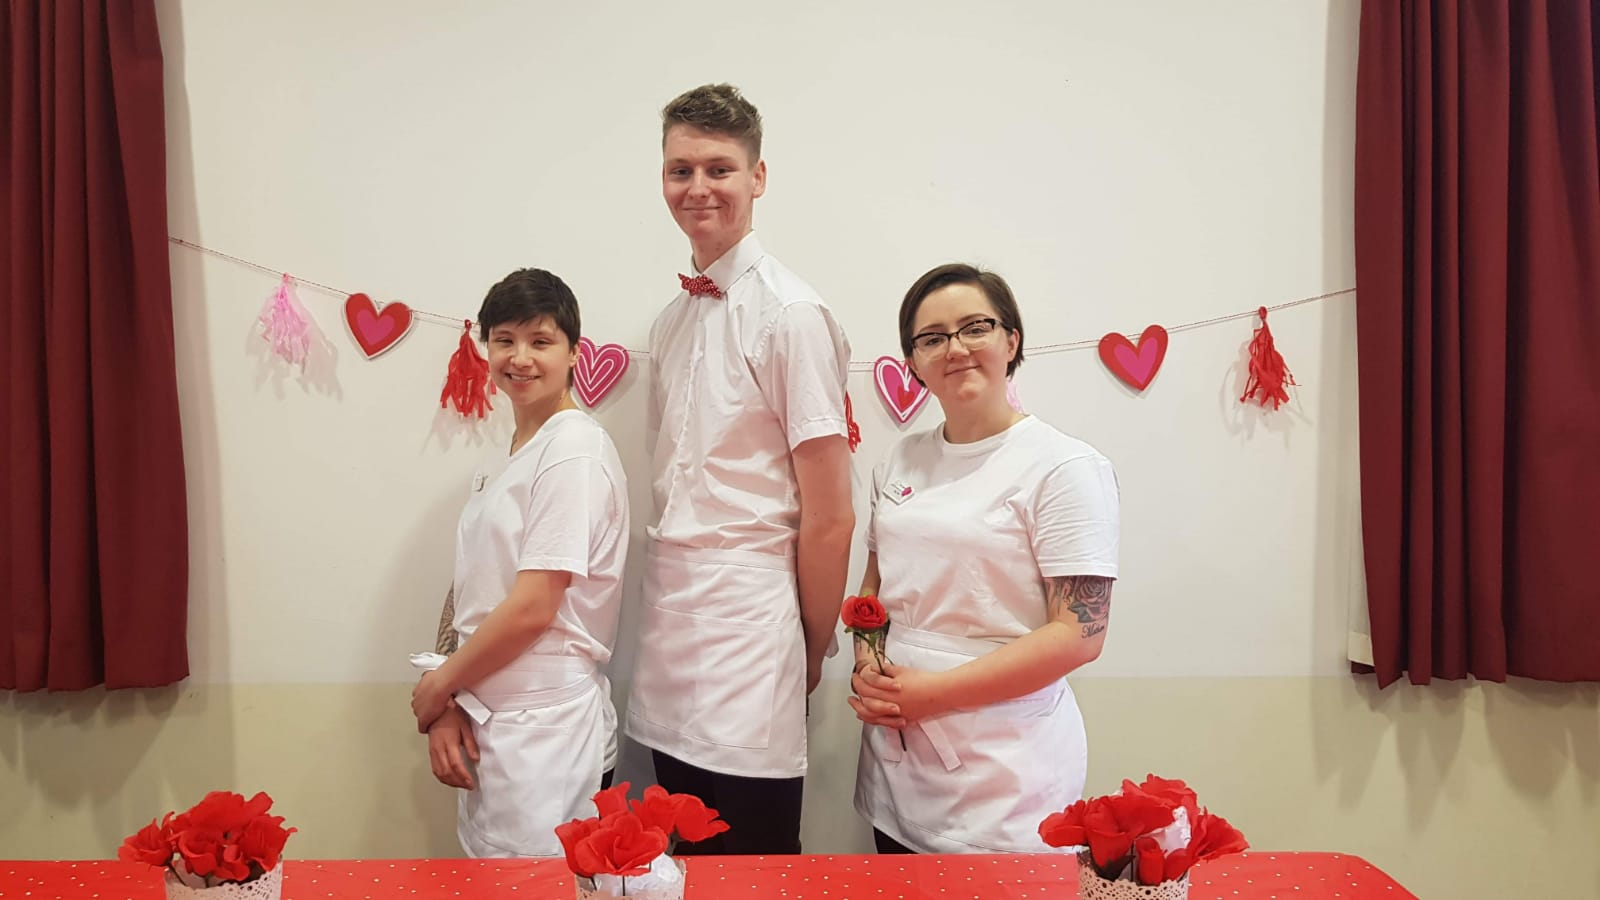 Valentine's Day in a Northampton Care Home